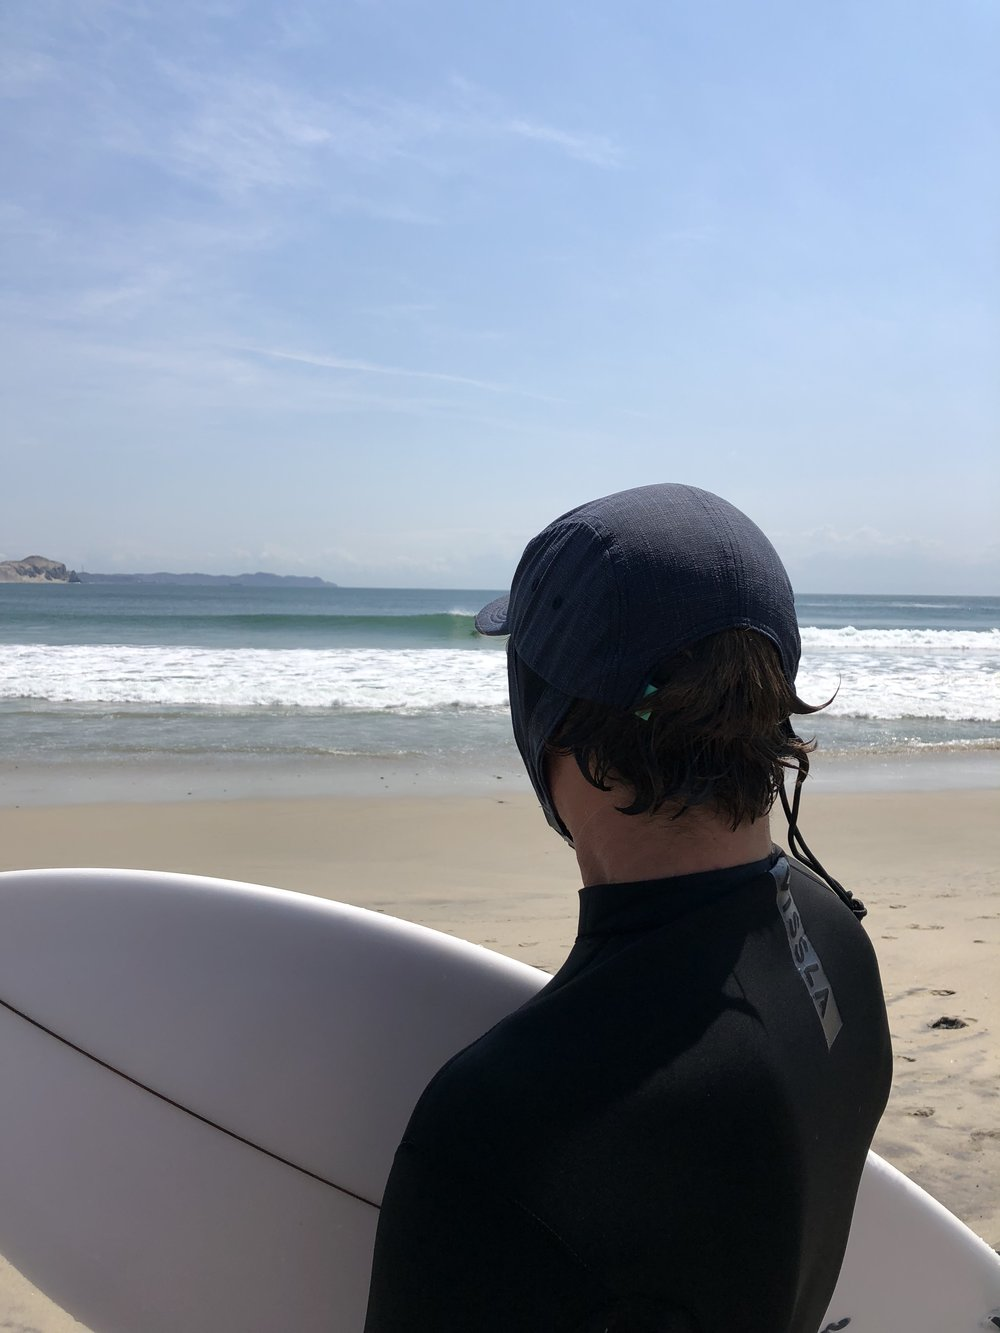 EG mind surfing. Would his brain be functioning as well without the shade provided by the hat ?